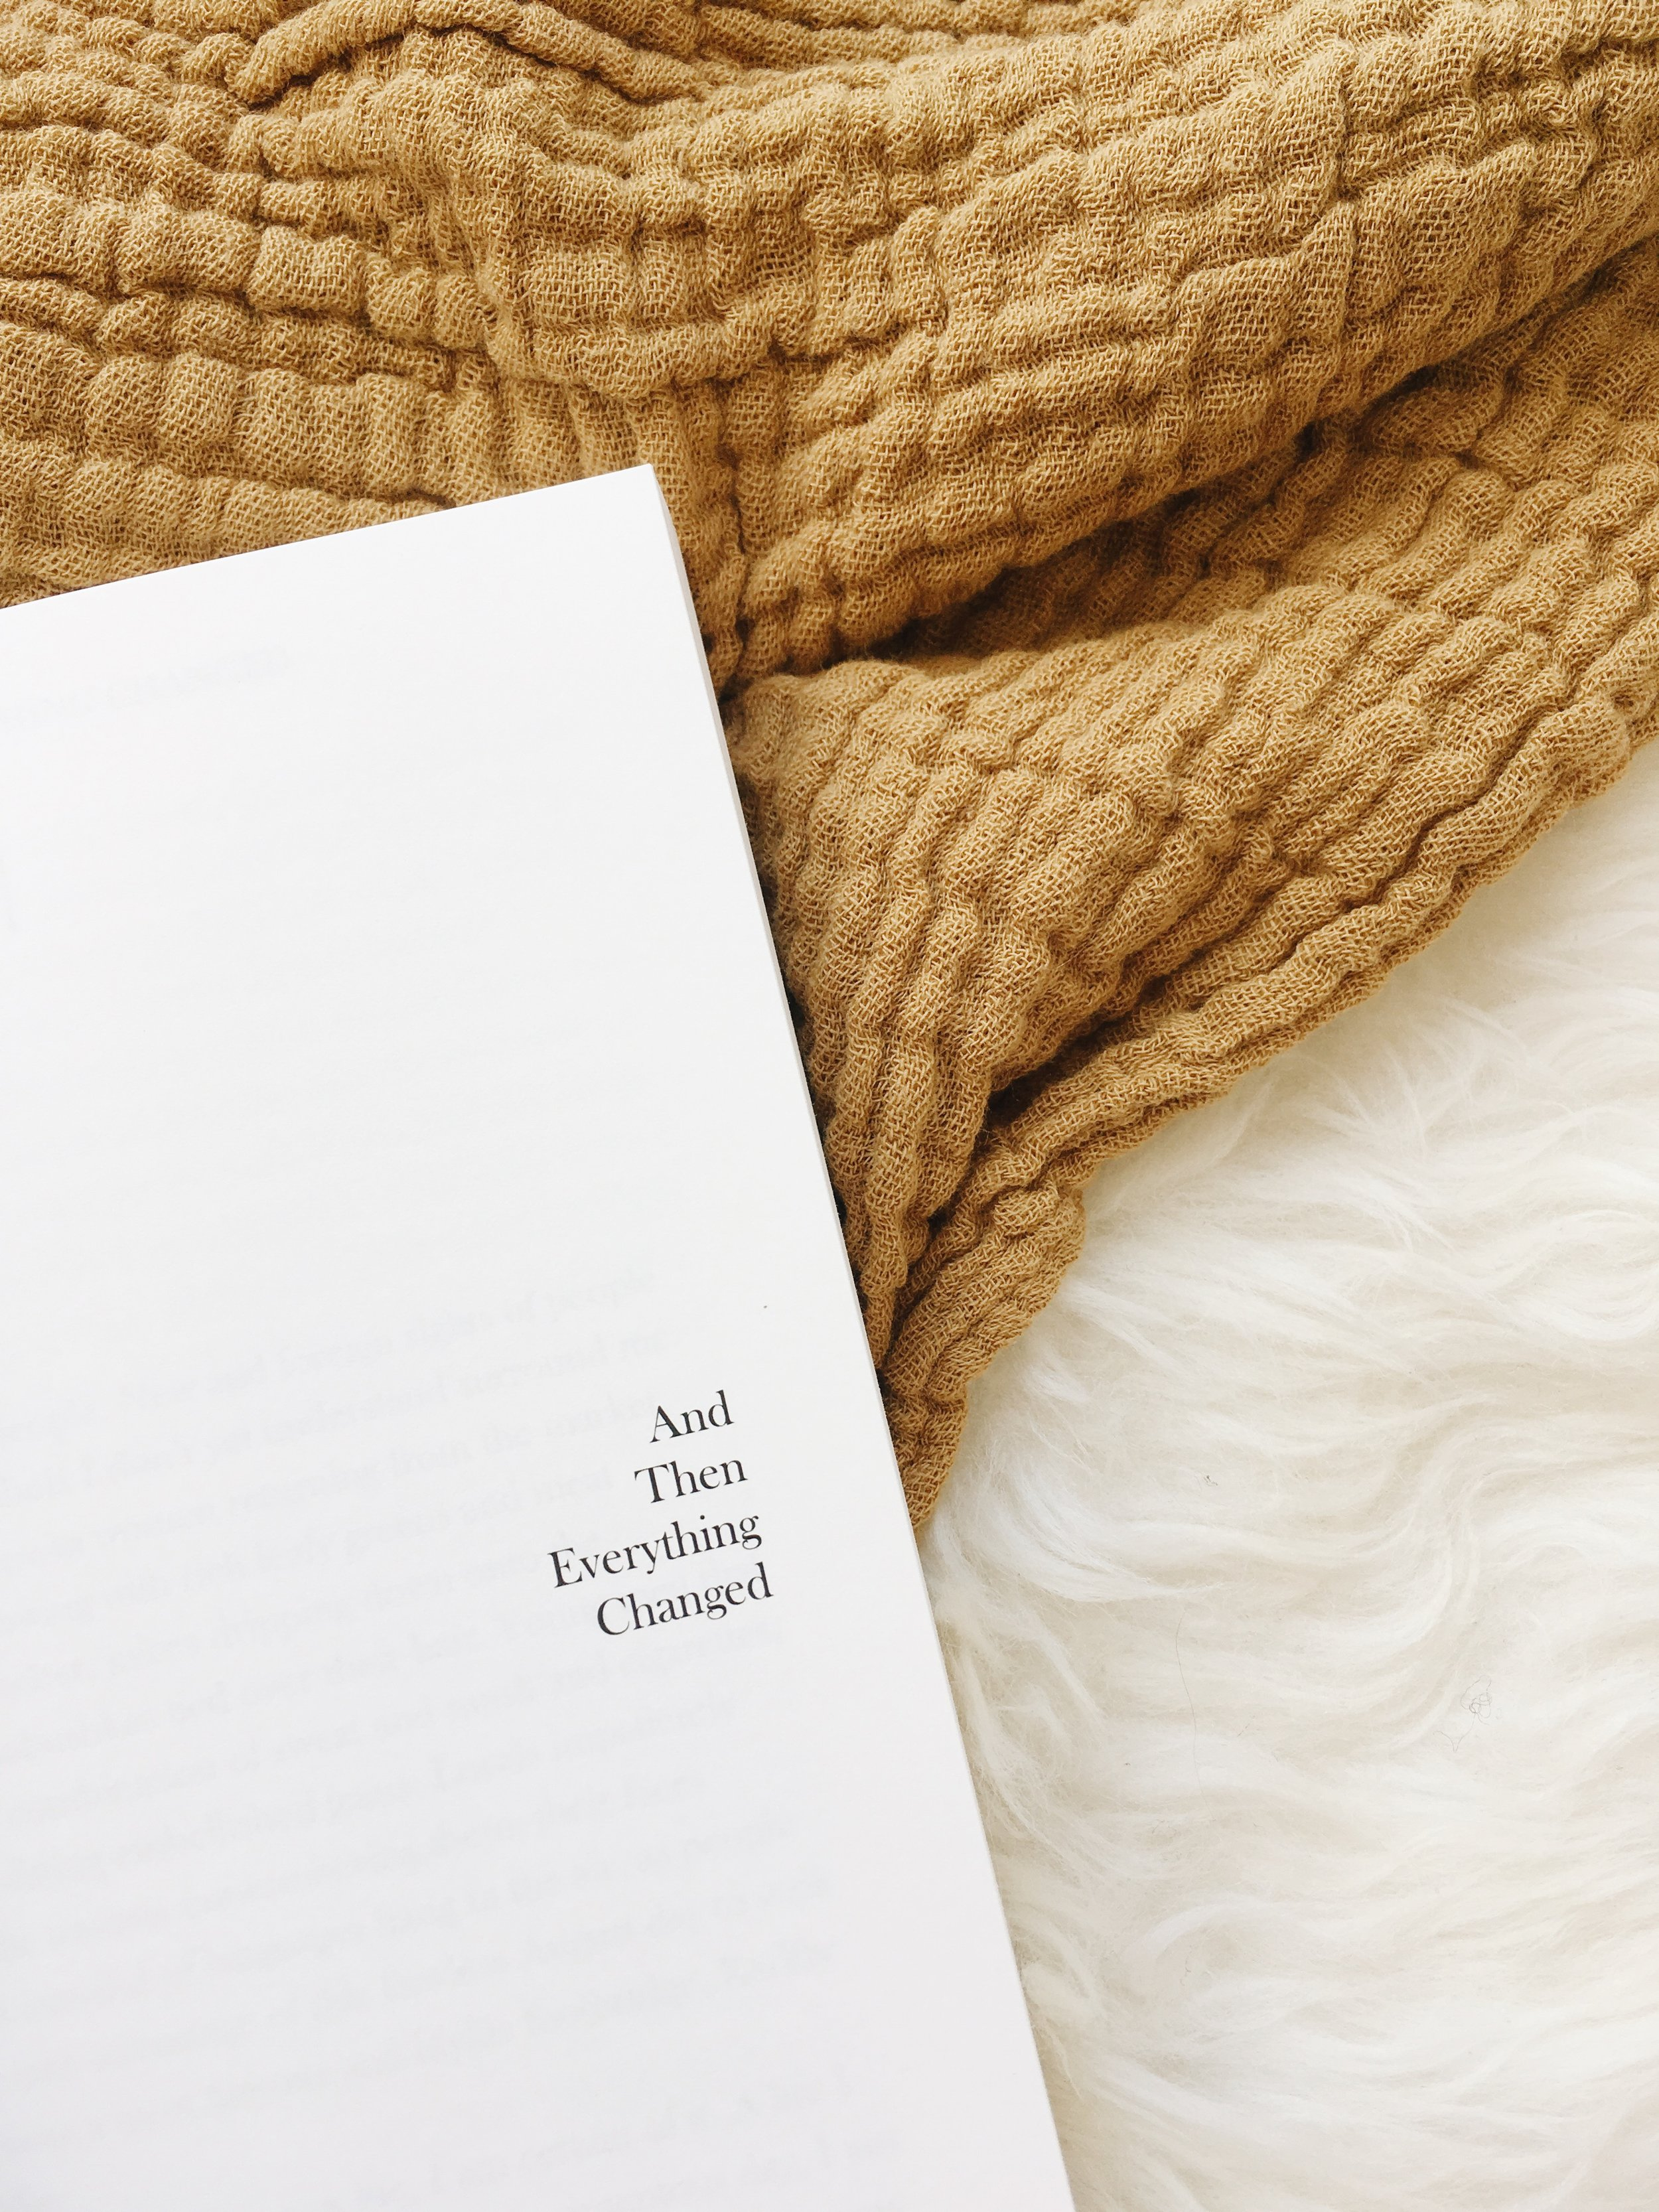 and-then-everything-changed-book.JPG